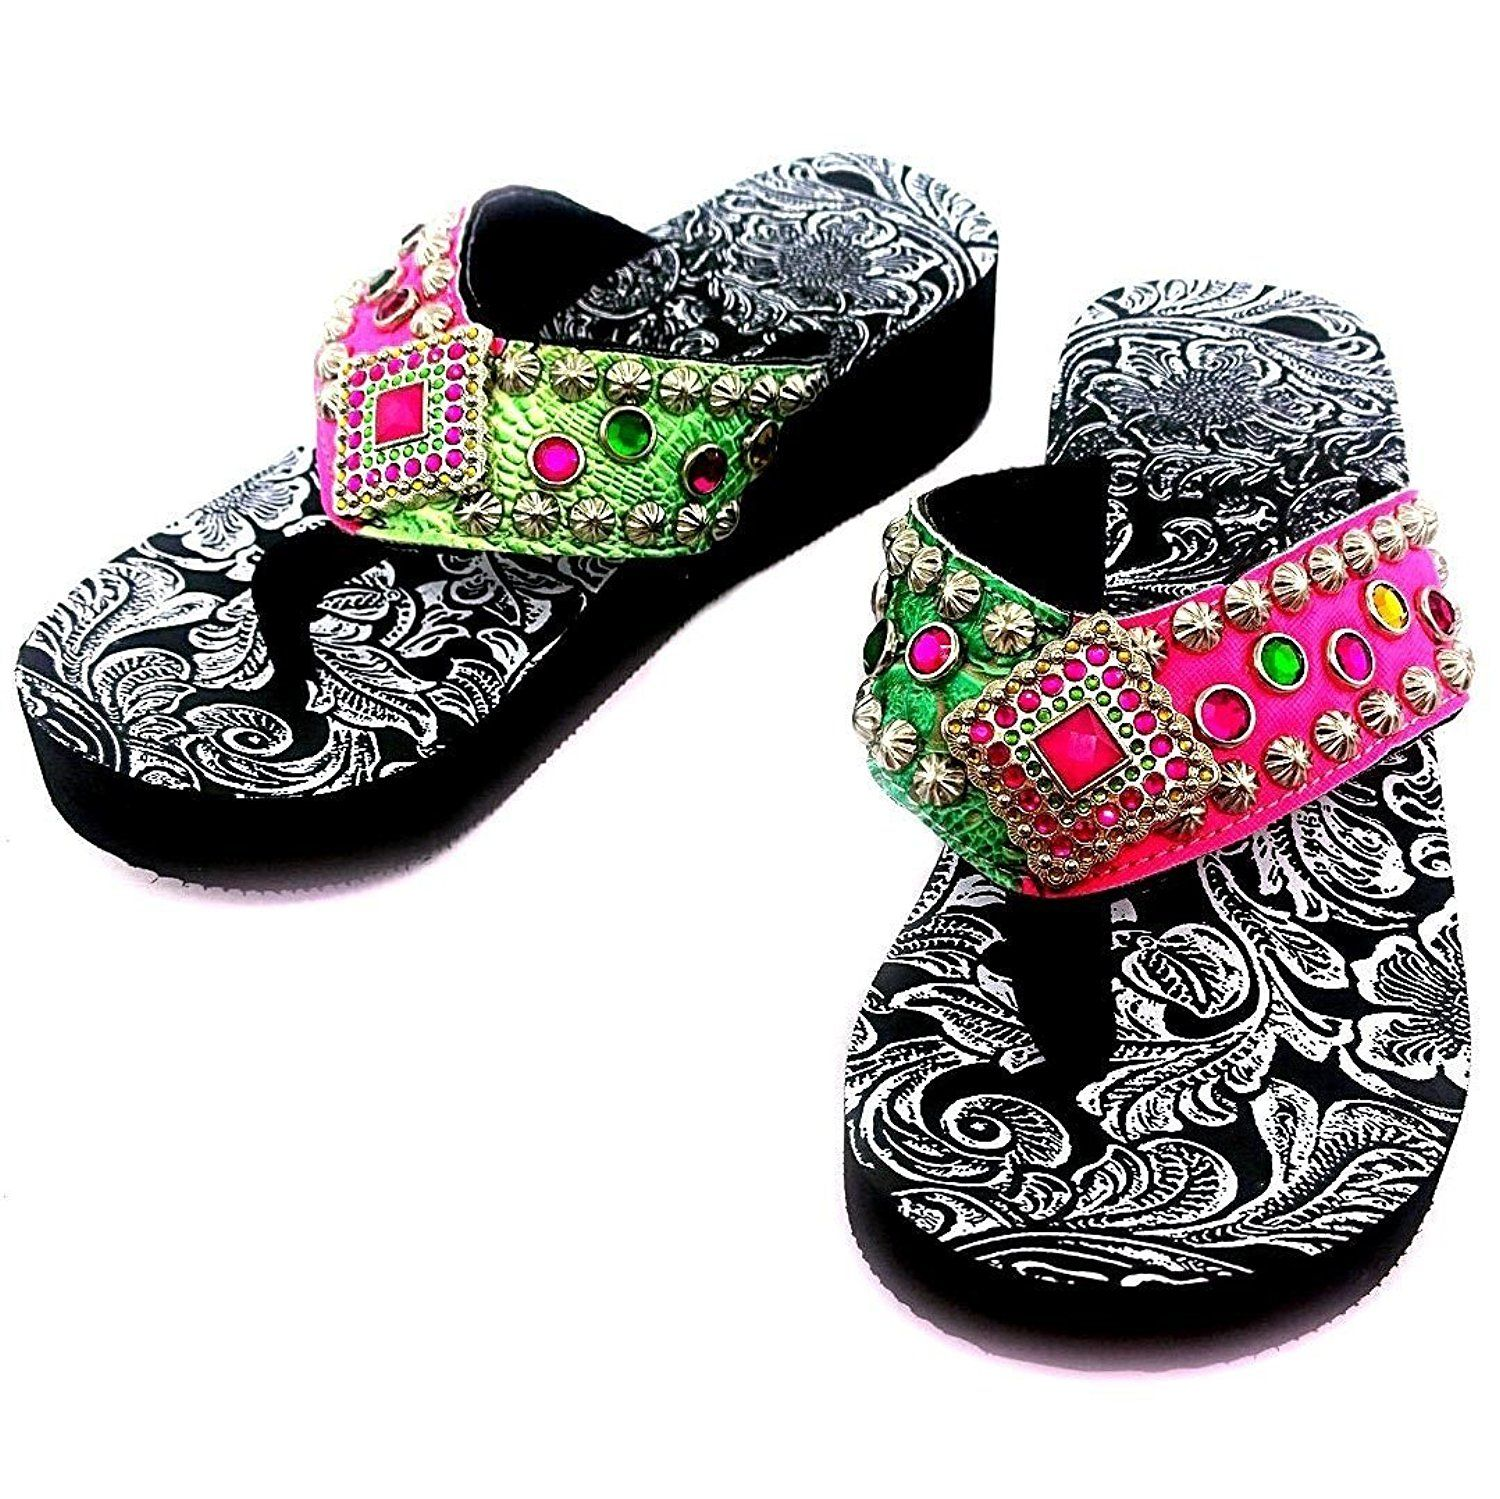 Women's Rhinestone Diamond Concho and Studs Multicolor Pink and Green PU Sandal Flip Flop